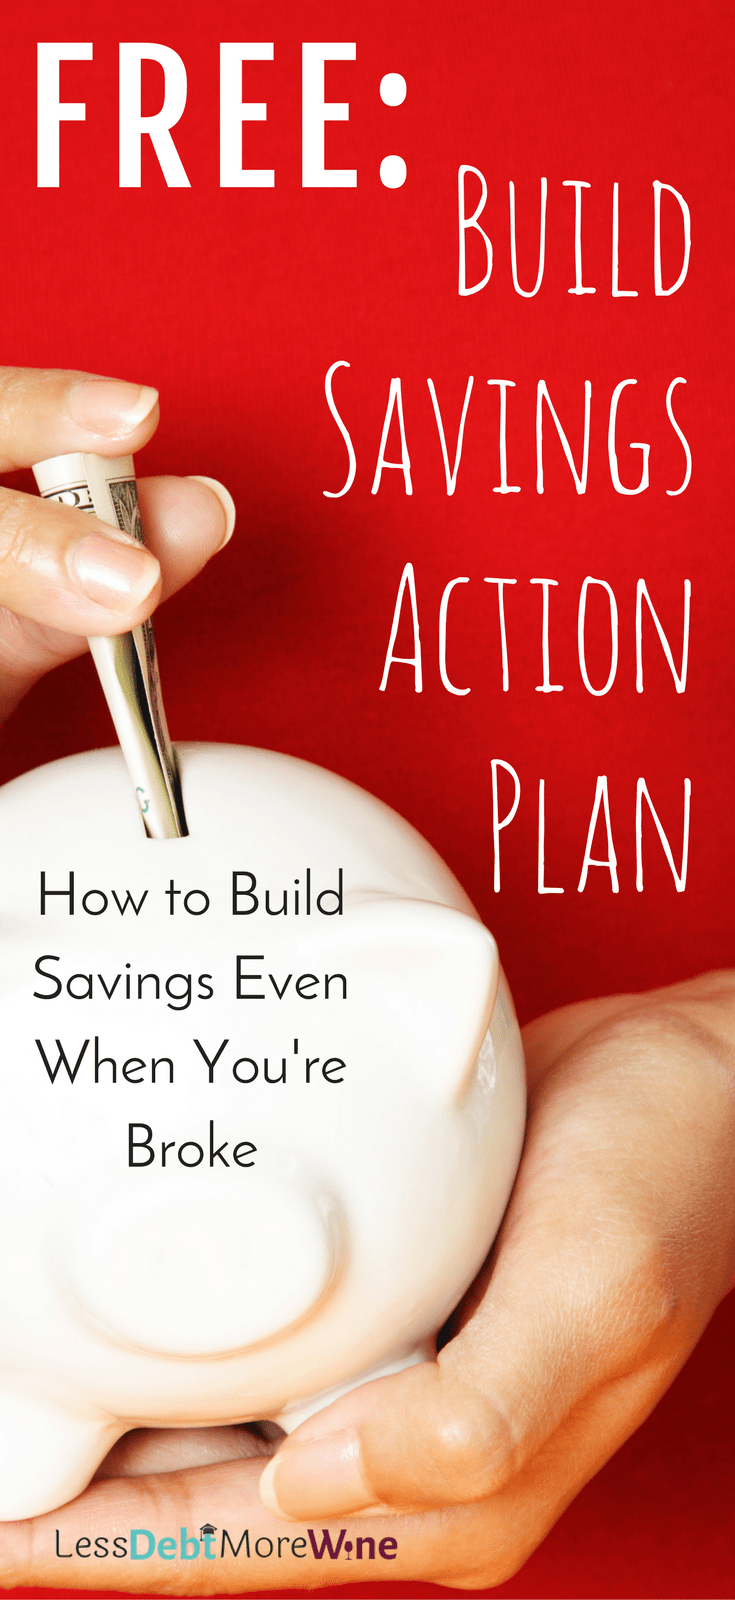 build savings | save money | personal finance tips | millennial money tips